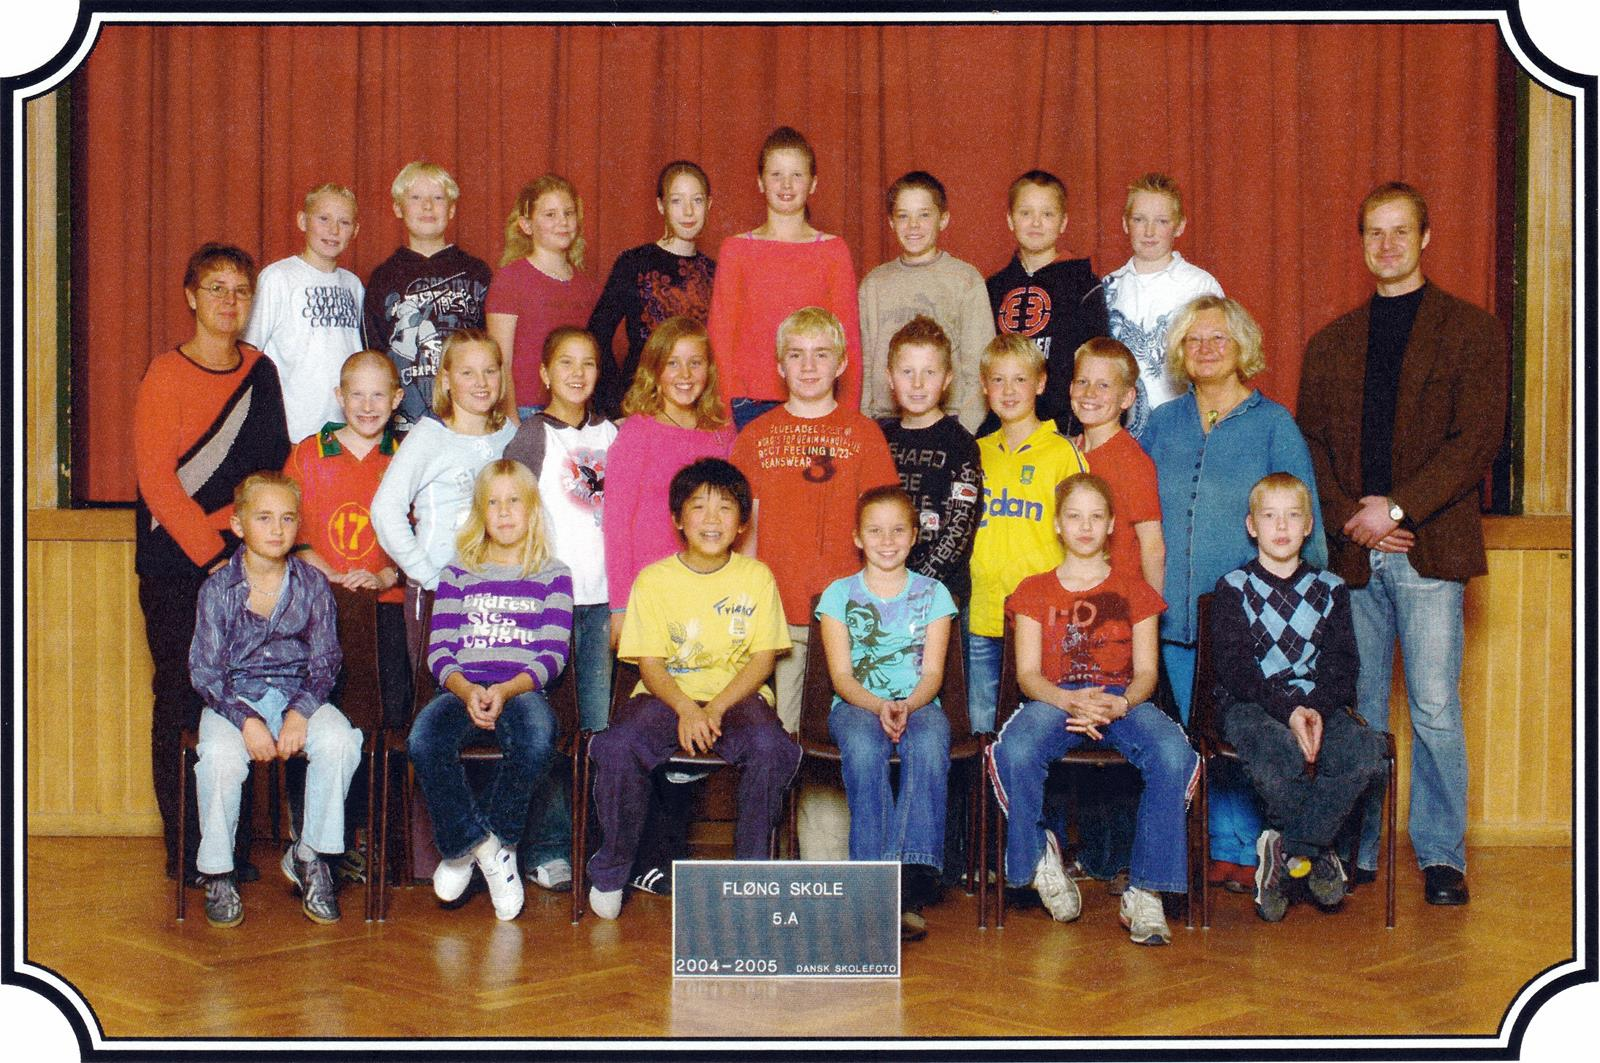 IMG_5.A 2004-05